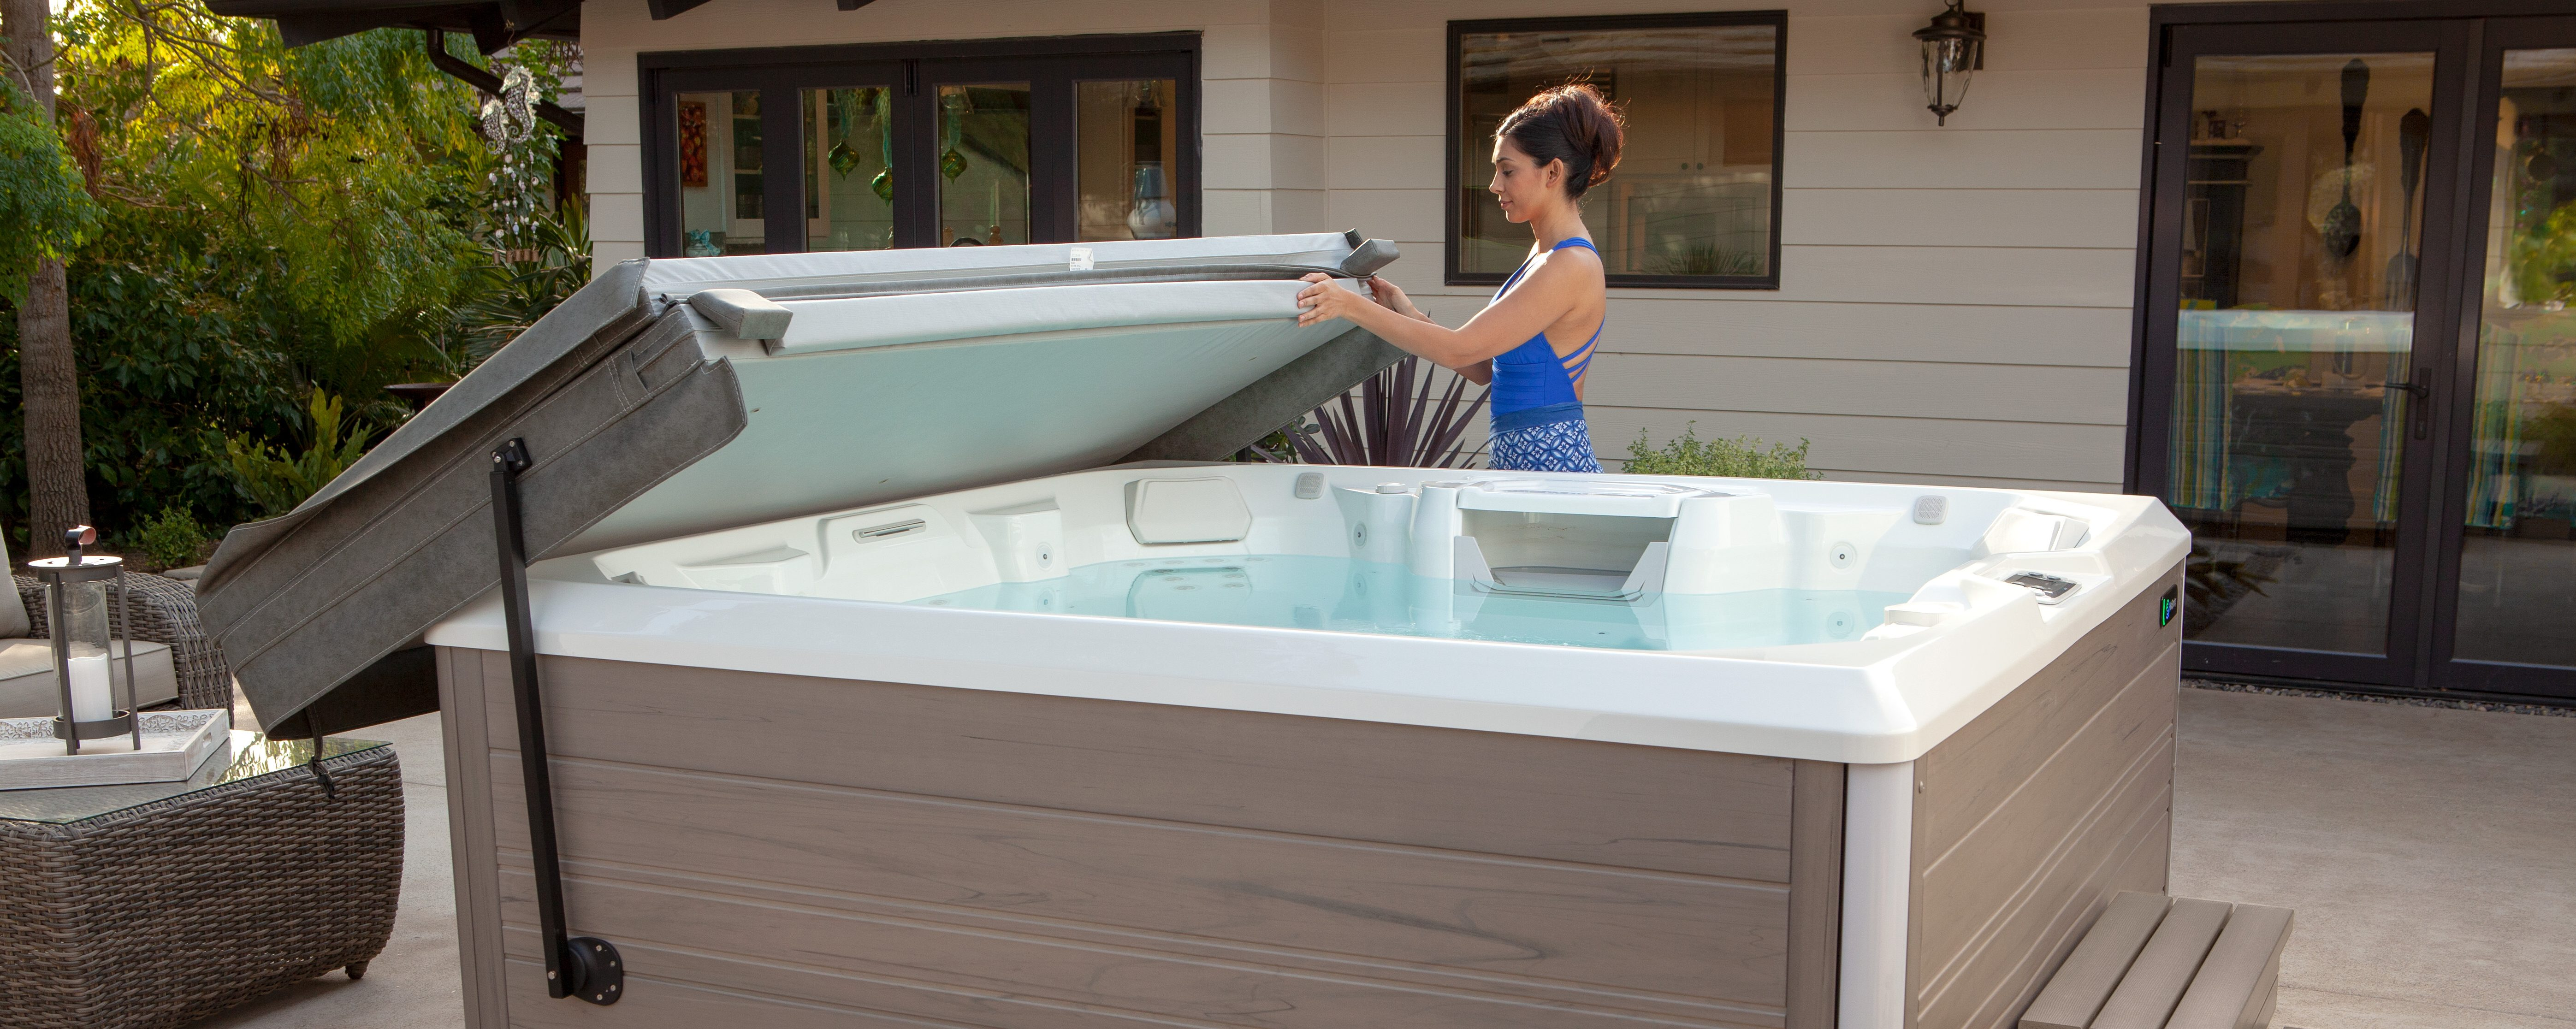 What is so Important About Hot Tub Covers?